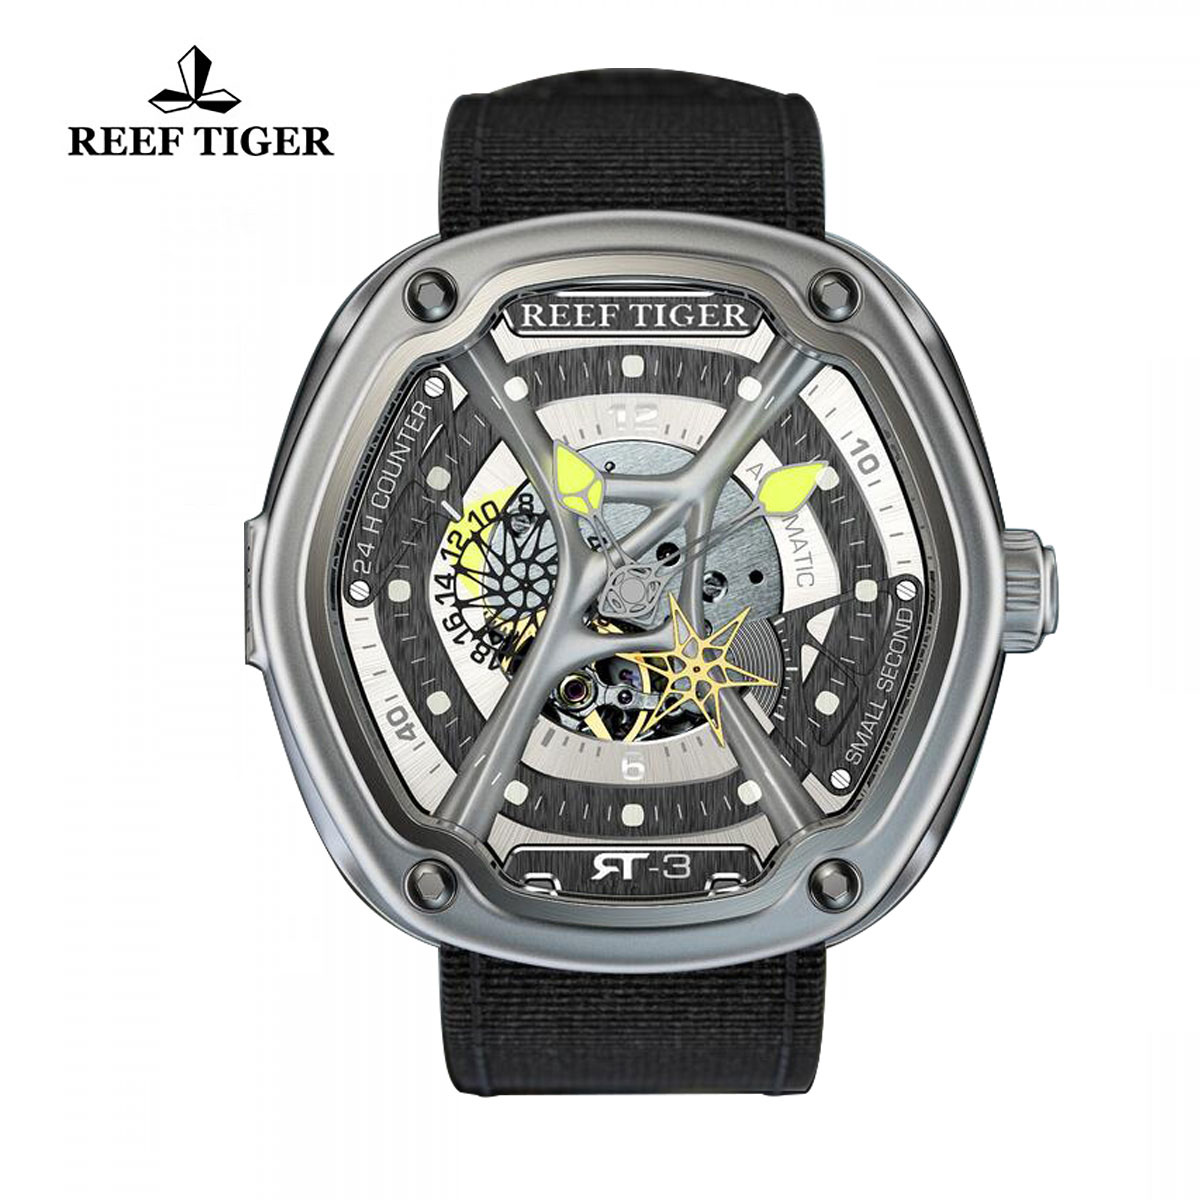 Reef Tiger Gaia's Light Sport Watches Automatic Watch Steel Case Skeleton Dial RGA90S7-YSB